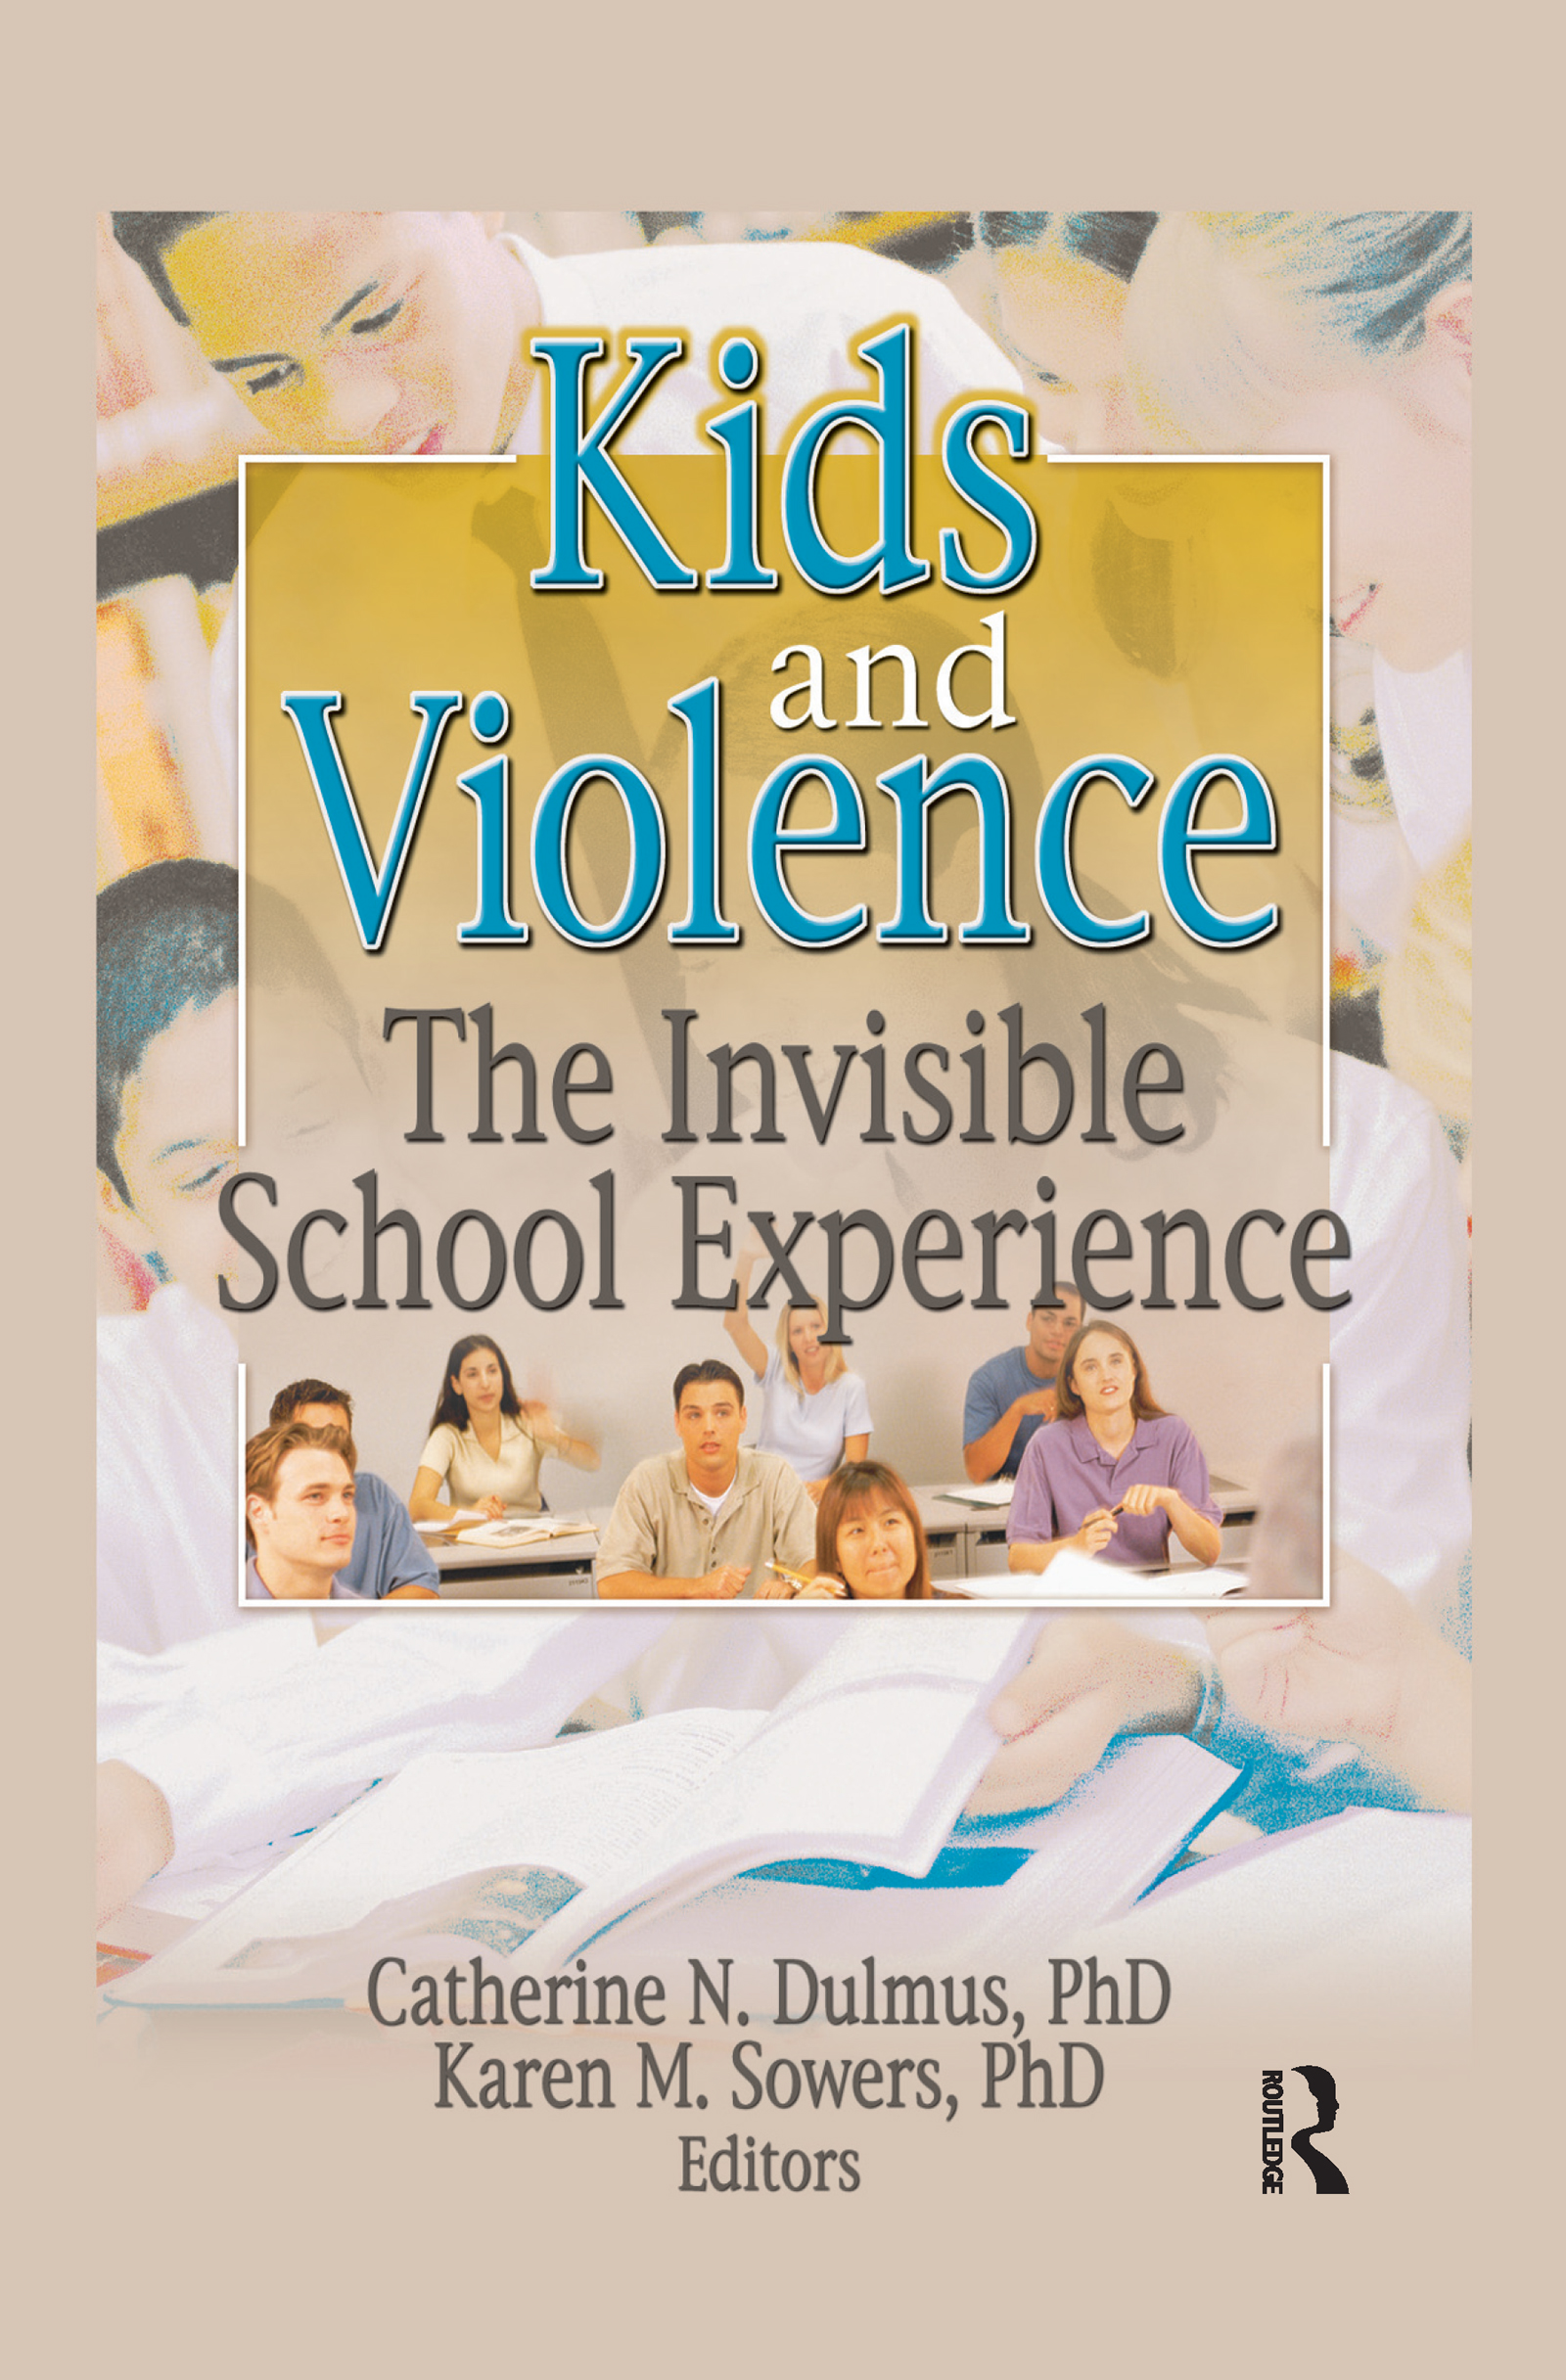 School-Based Violence Prevention Programs: A Review of Selected Programs with Empirical Evidence